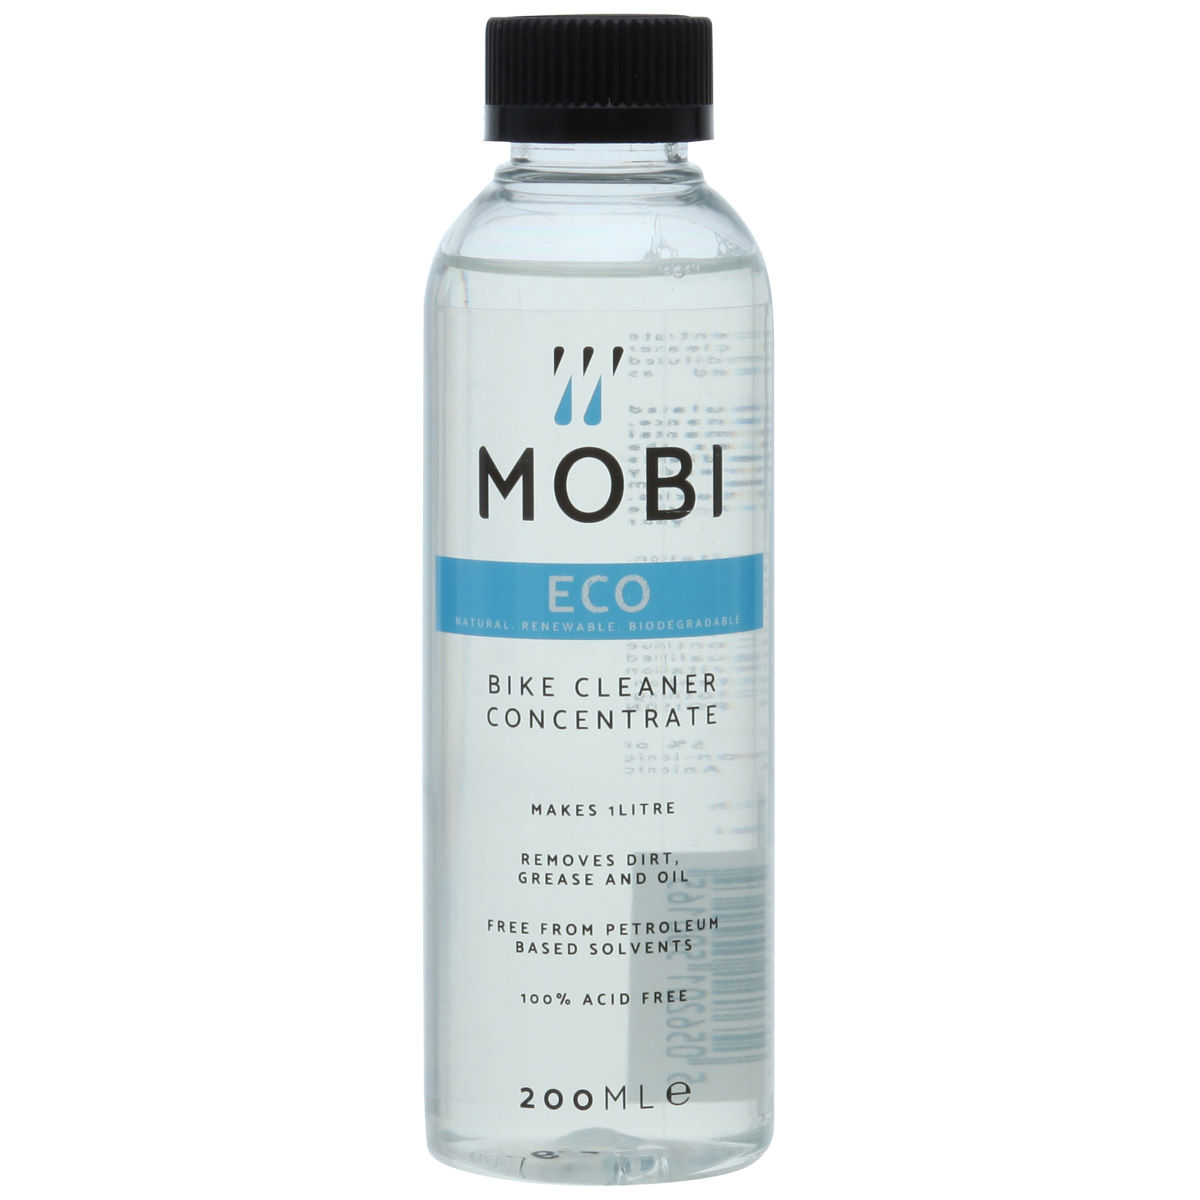 Mobi Eco Bike Cleaner Concentrate 200ml - Productos de limpieza